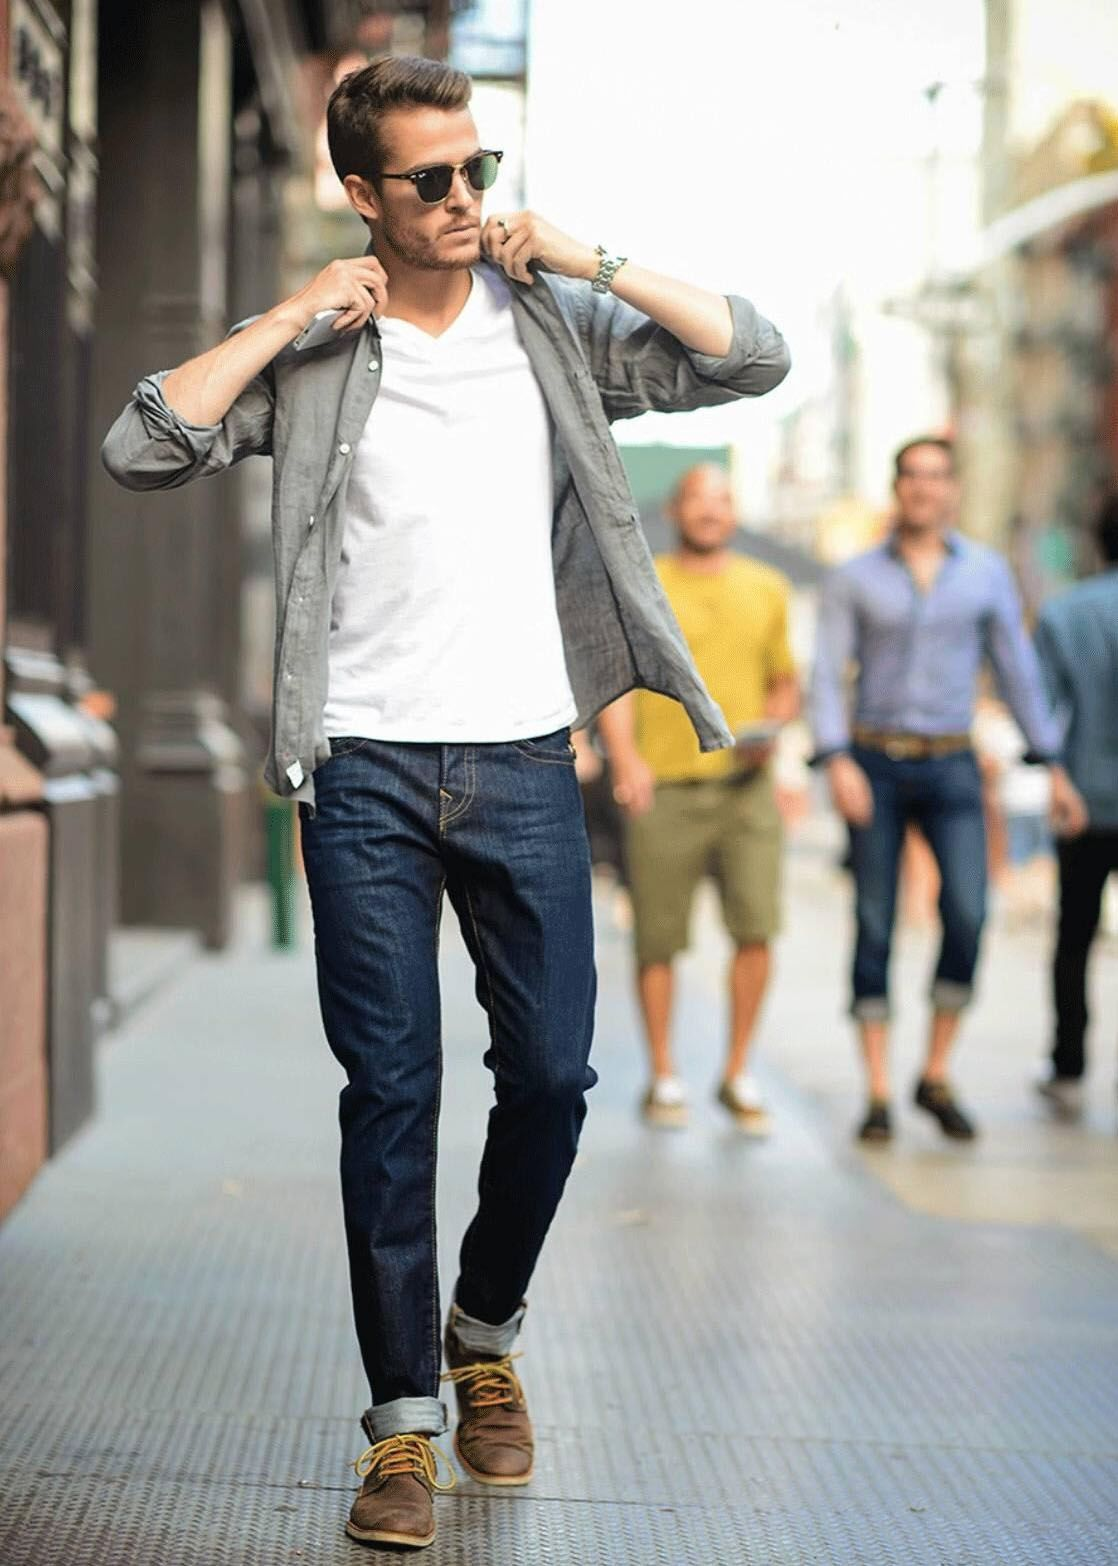 89a48b5934c The 10 Things Women Find Most Attractive in Men s Style - The GentleManual